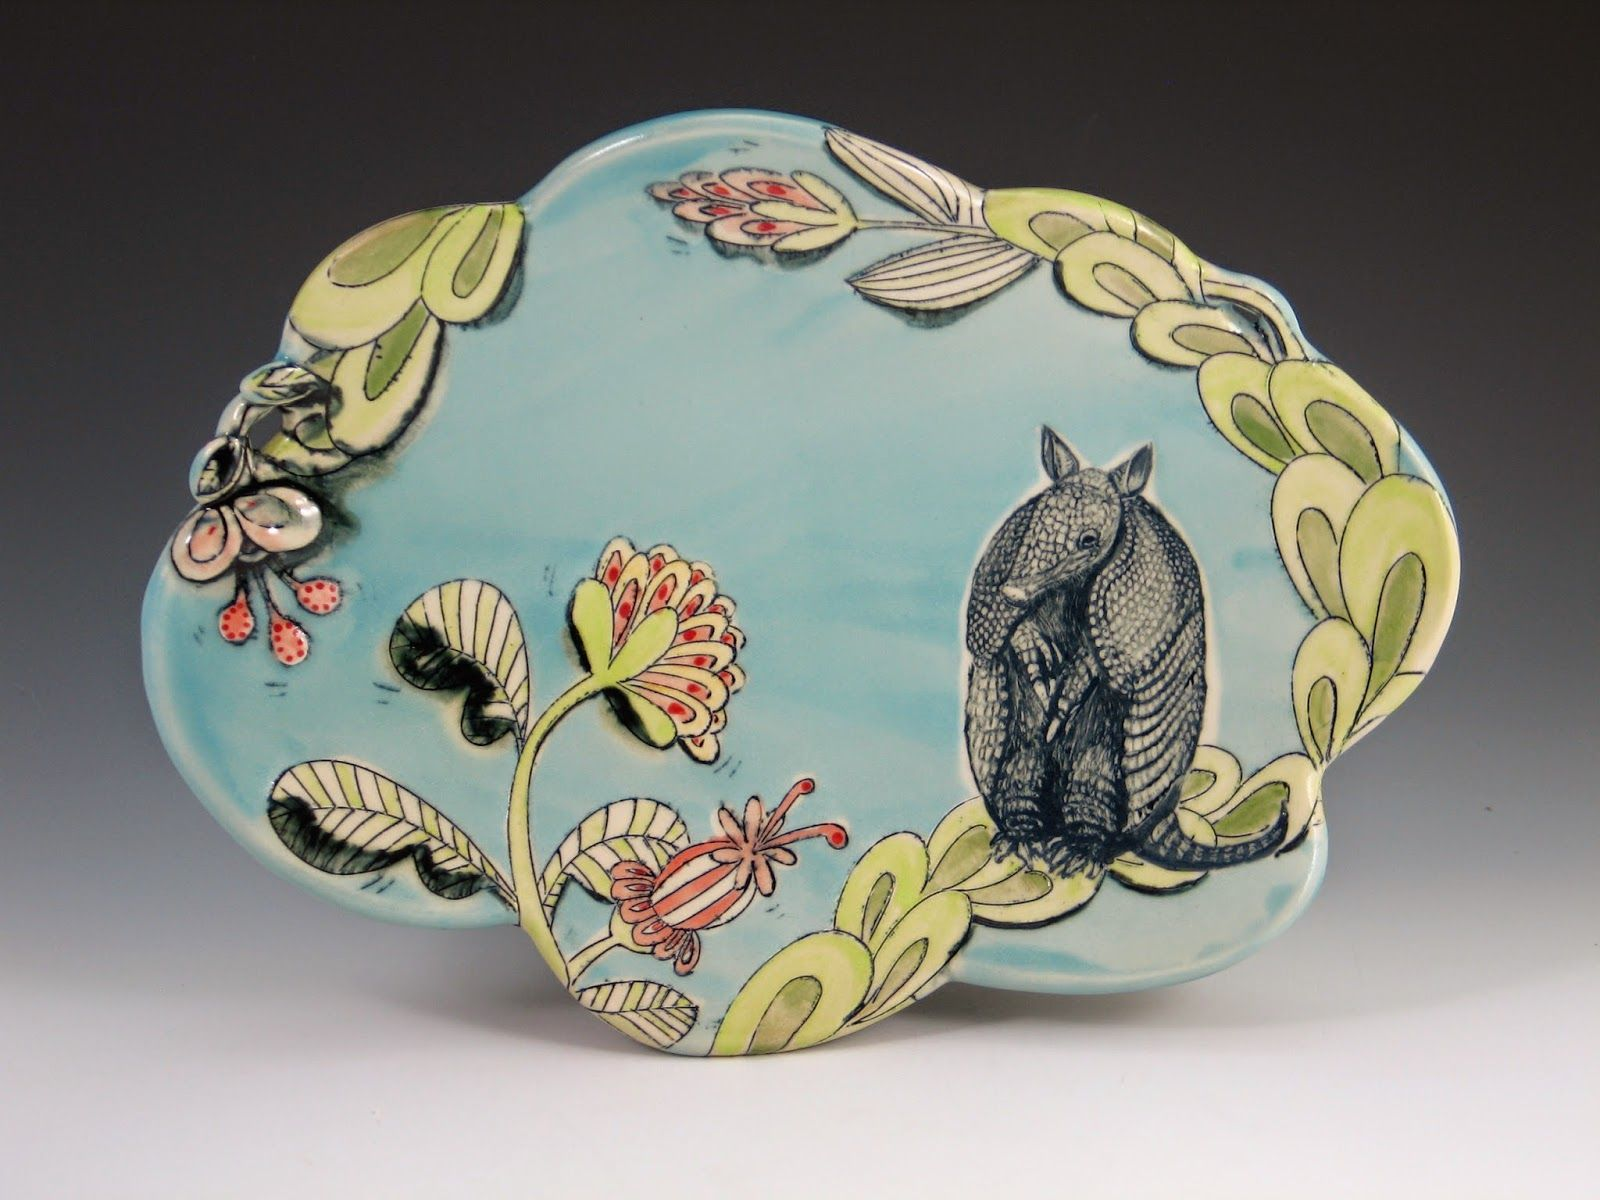 A celebration of plate design 5 days a week. & Armadillo Platter by Chandra DeBuse a potter in Kansas City MO ...